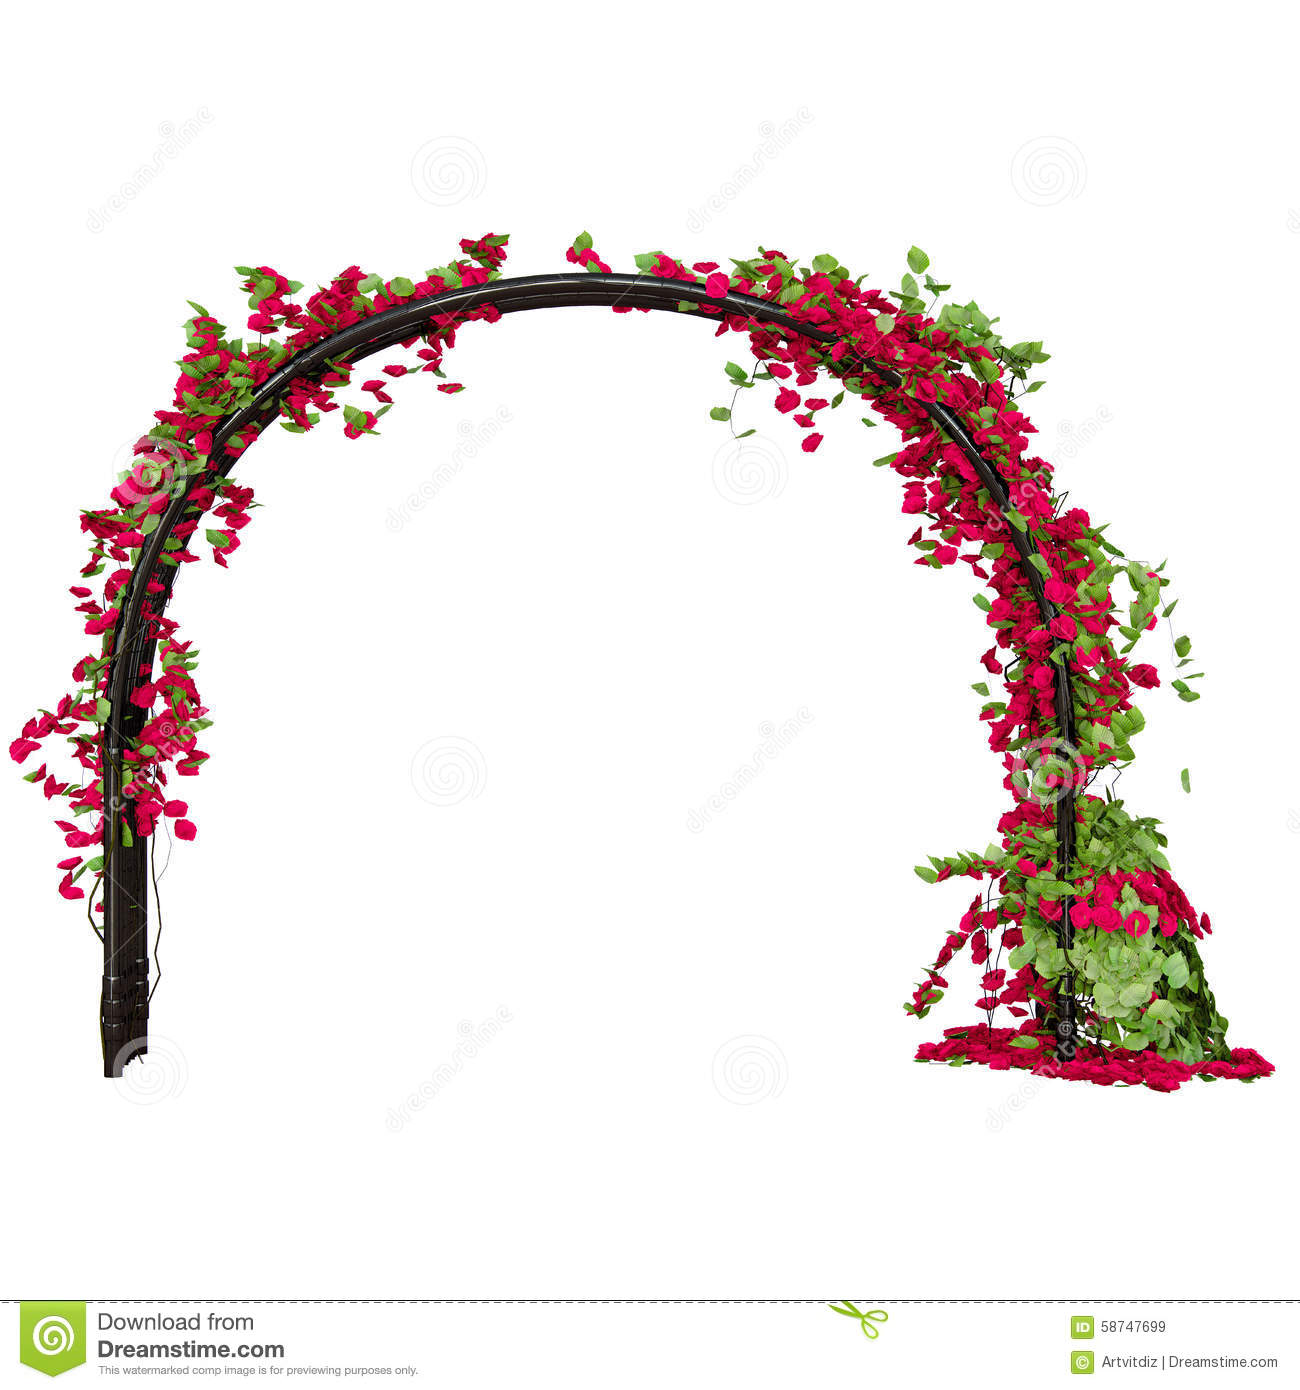 Decorative Pergola Shade Canopy as well Wood Privacy in addition Stock Illustration Metal Pergola Shaped As Arc Front View Arched Red Rose Buds Green Leaves Image58747699 likewise Richmond Seated Arbour in addition ment 14594. on arched pergola plans